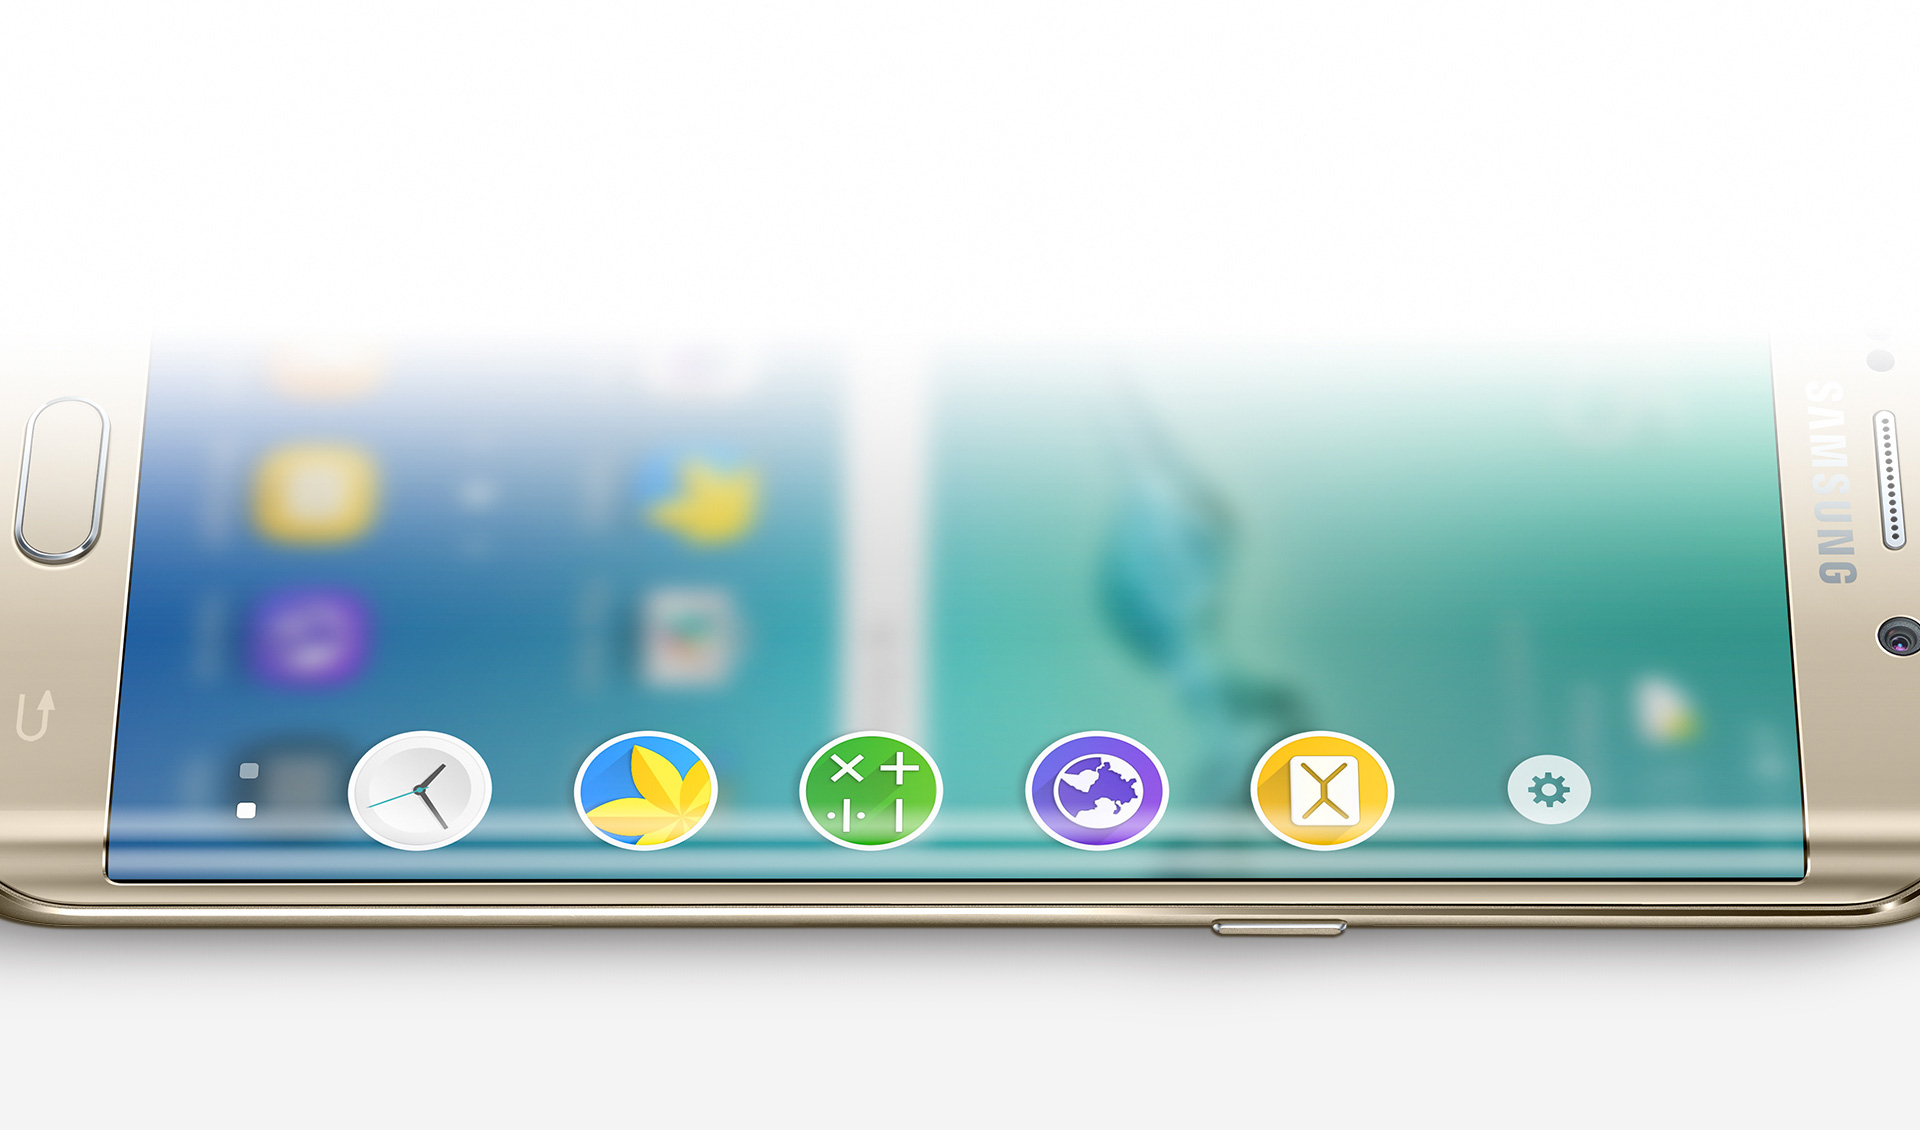 galaxy-s6-edge+_design_edge-ux_apps-edge